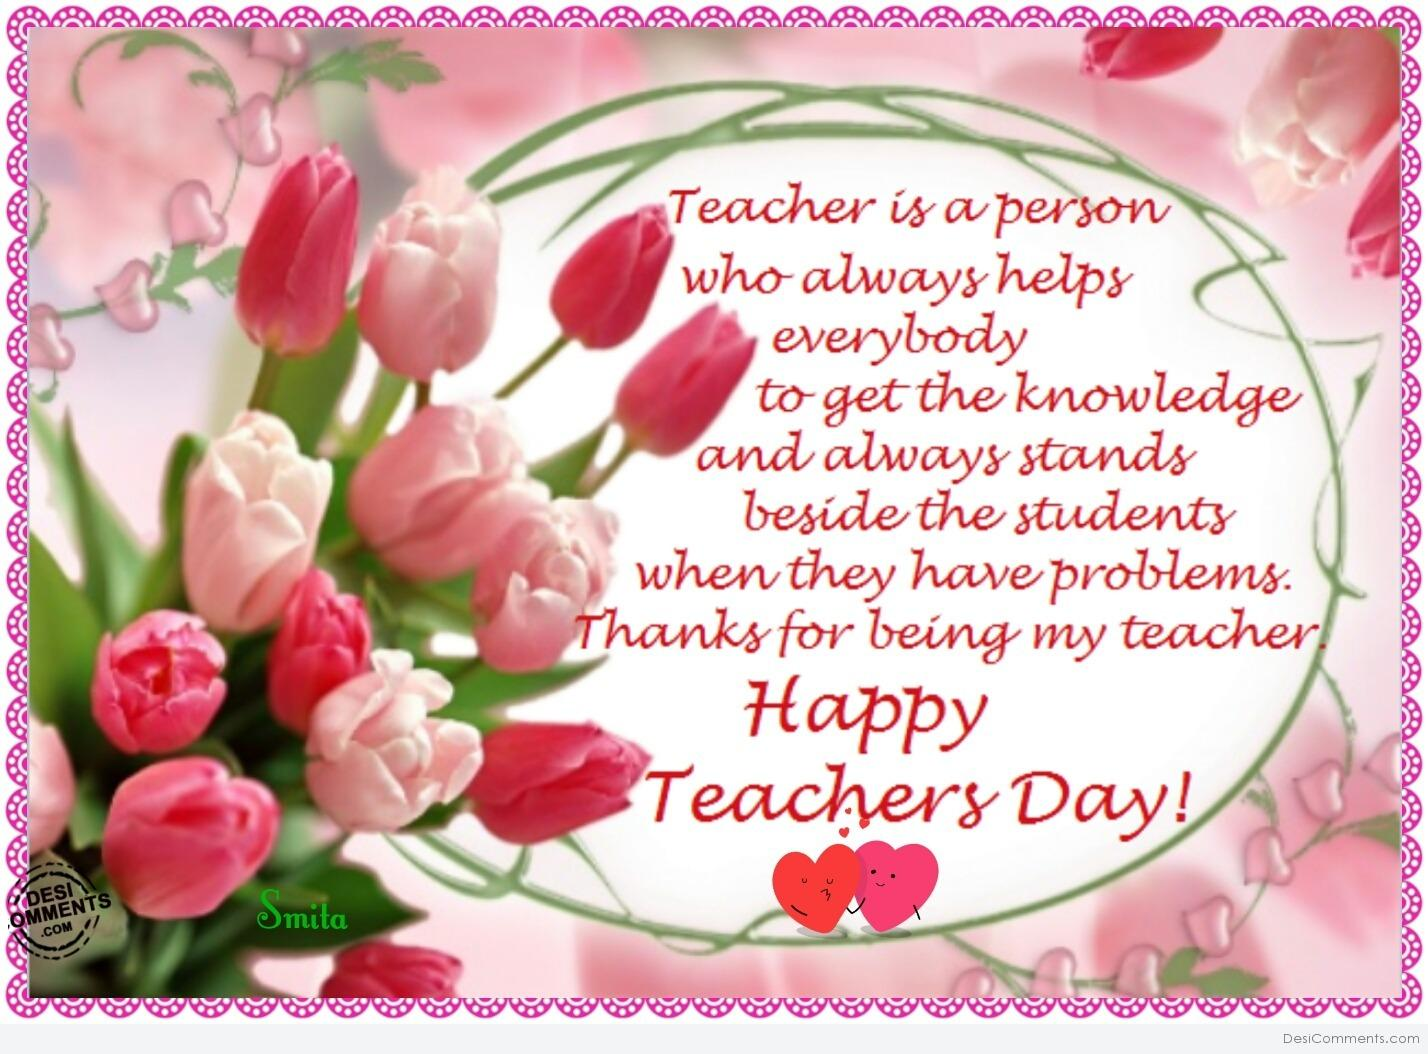 15 teachers day quotes images beautiful quotes for teachers teacher s day quotes images 13